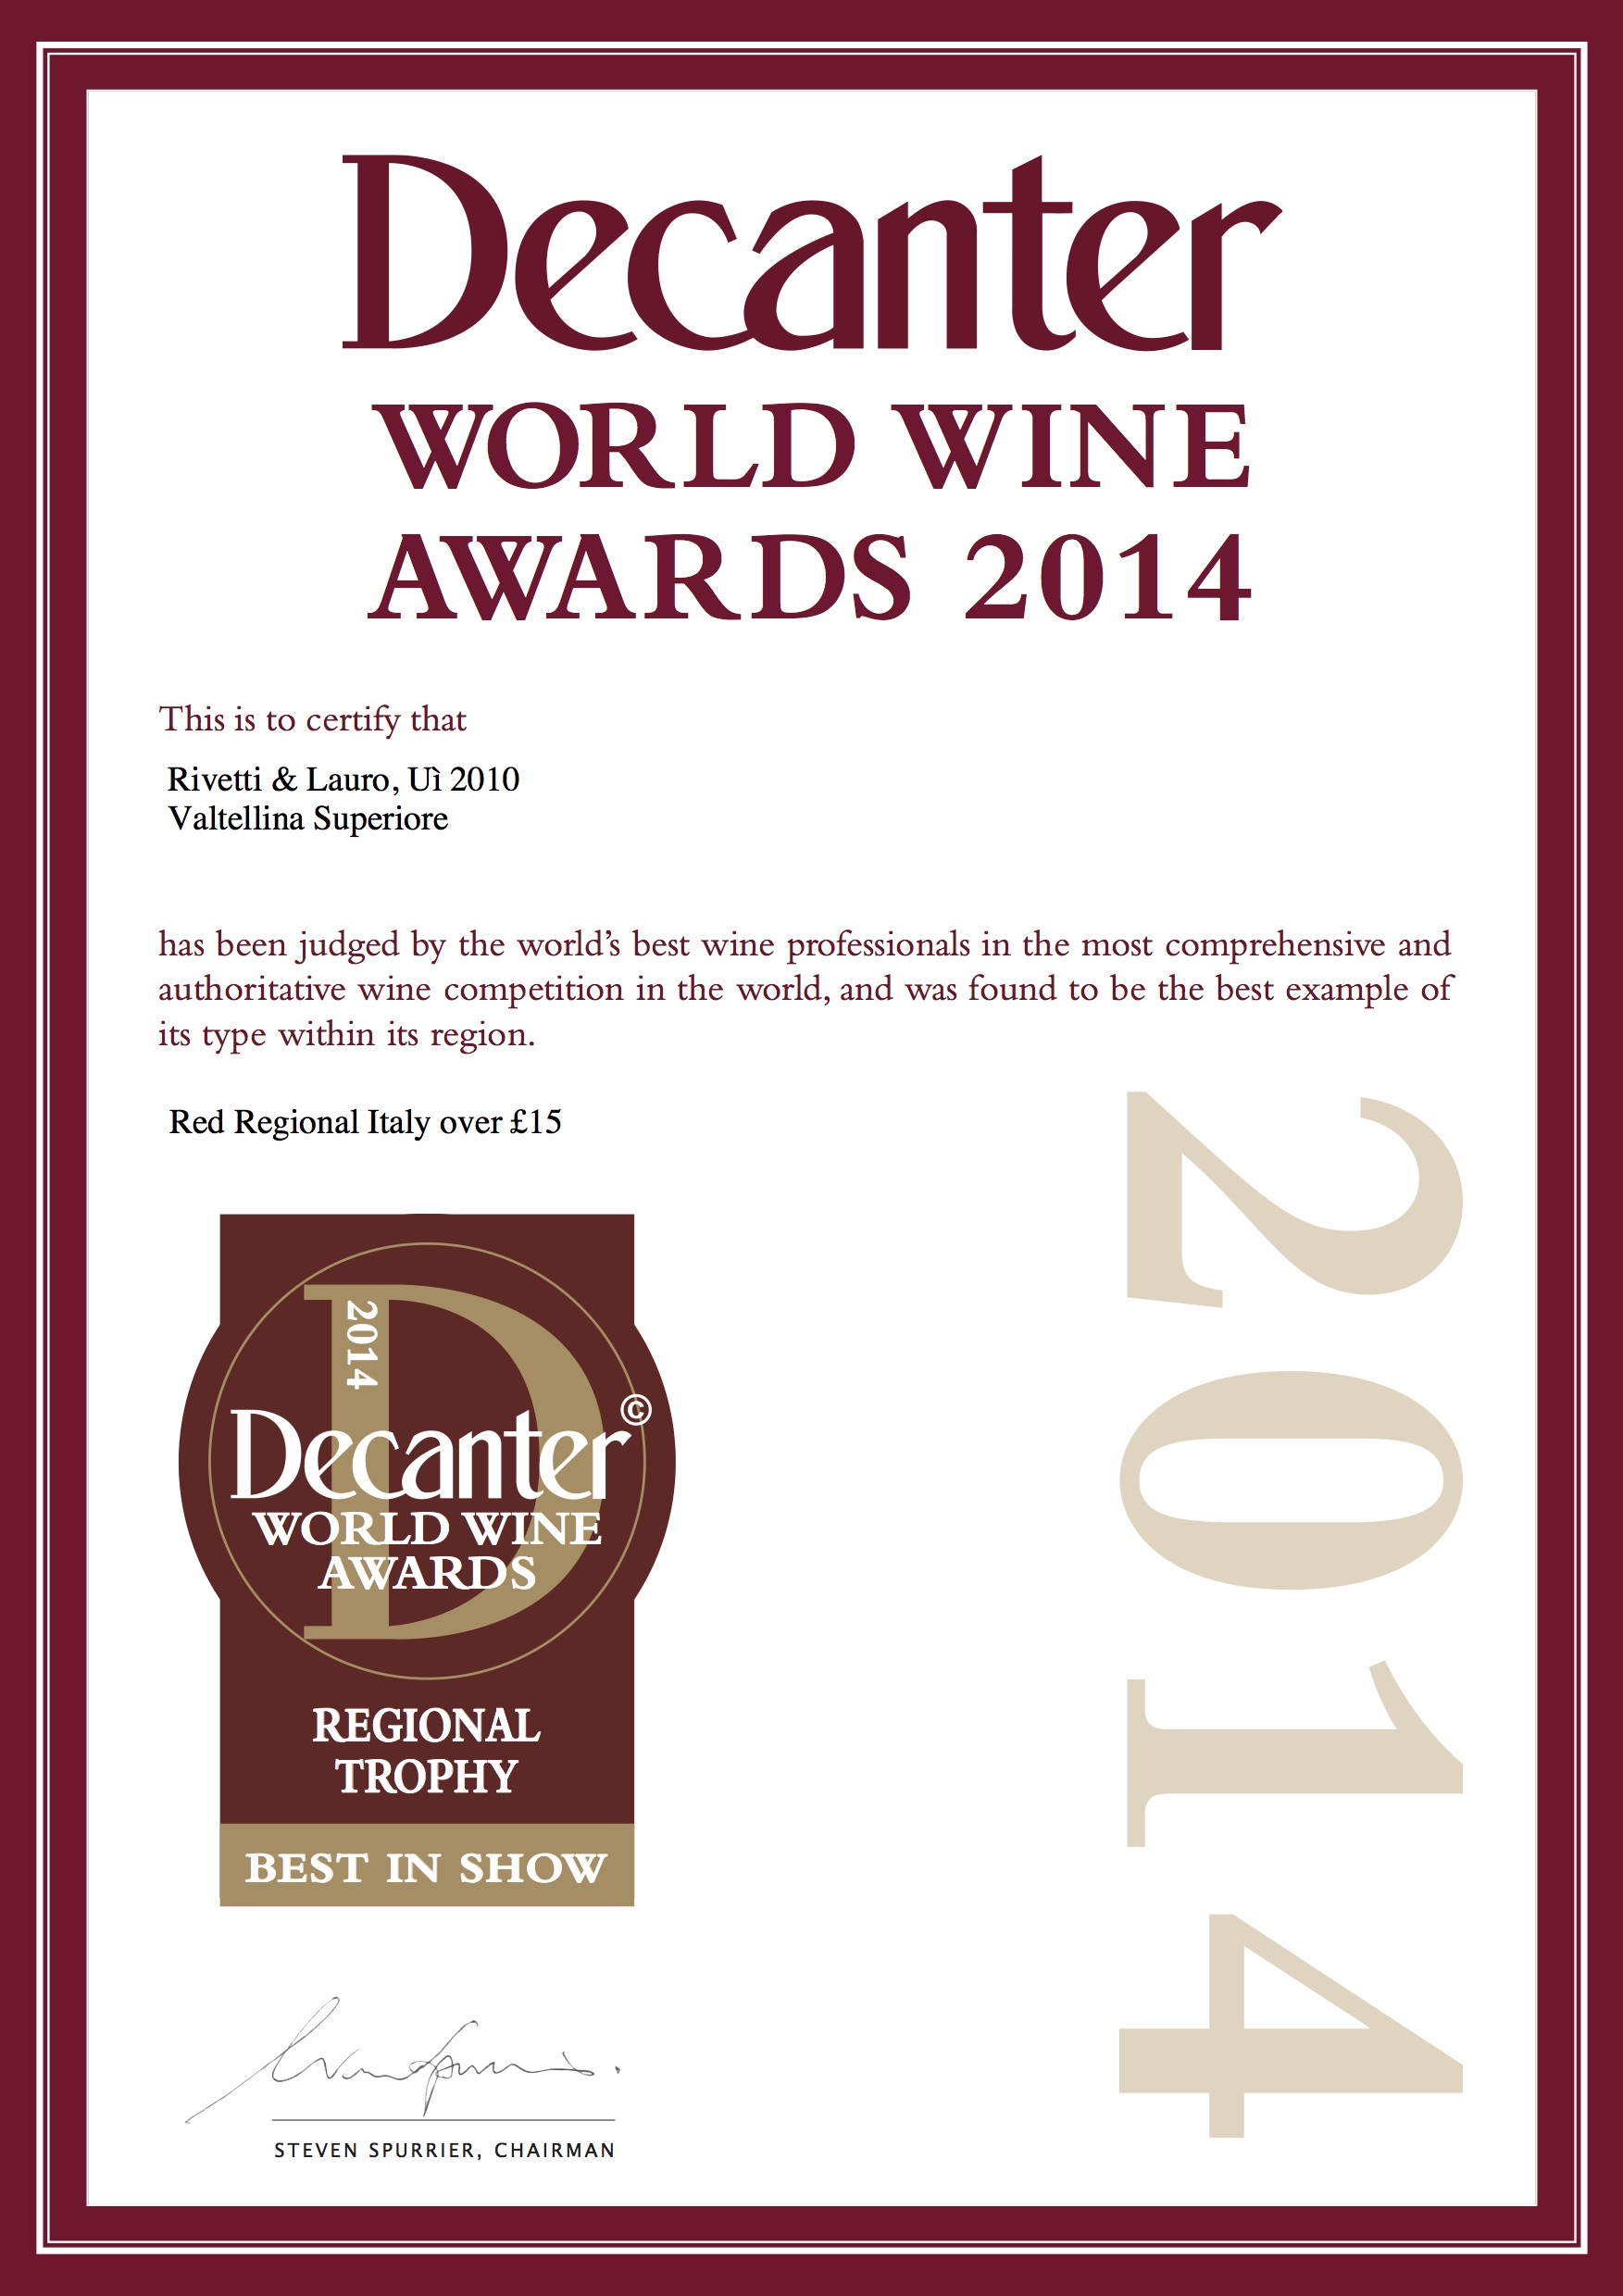 Decanter World Wine Awards 2014 Regional Trophy